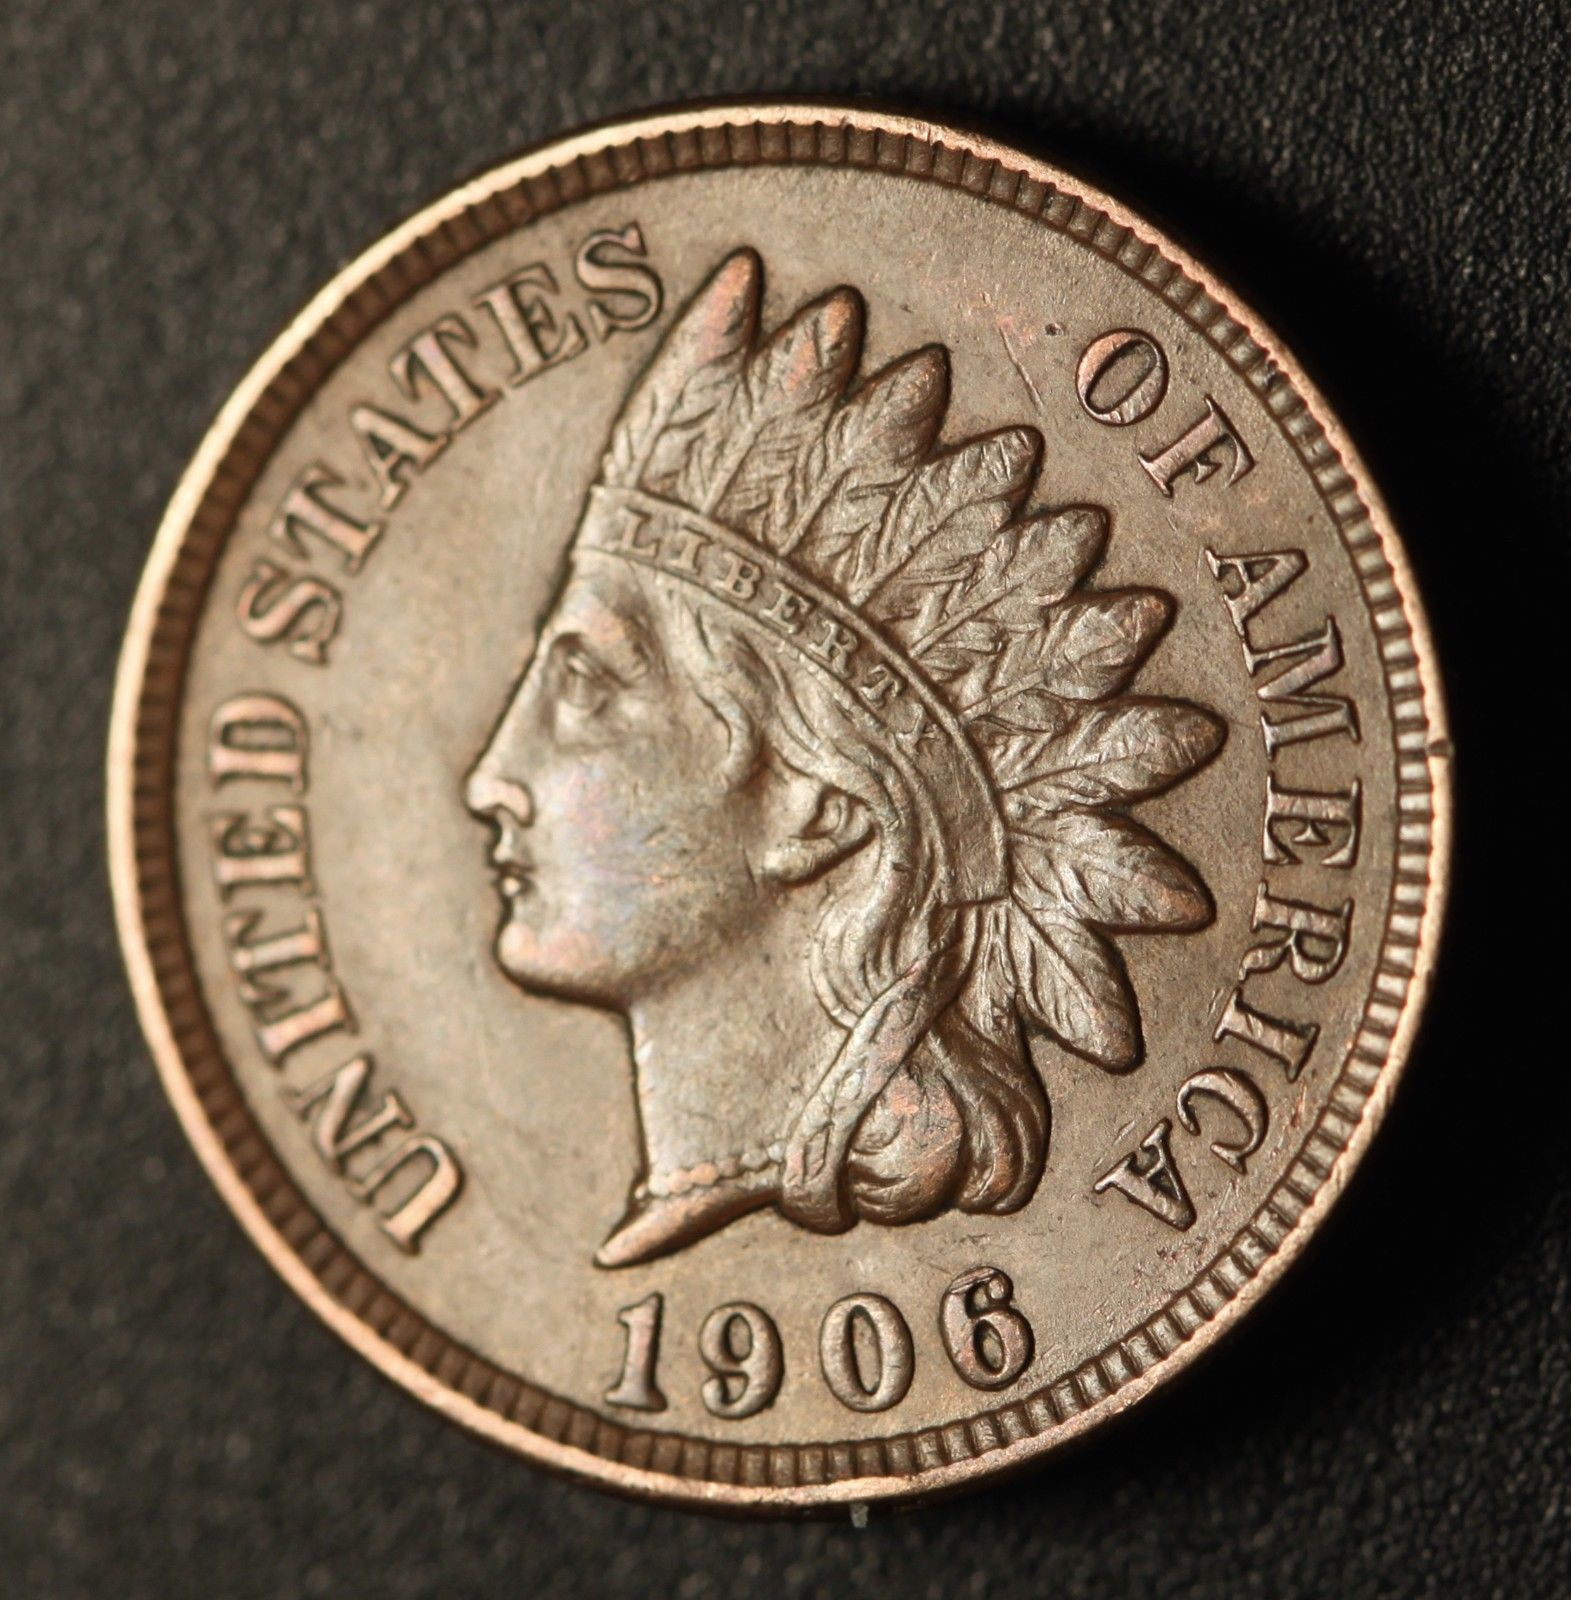 1906 RPD-009 Indian Head Penny - Photo by Ed Nathanson